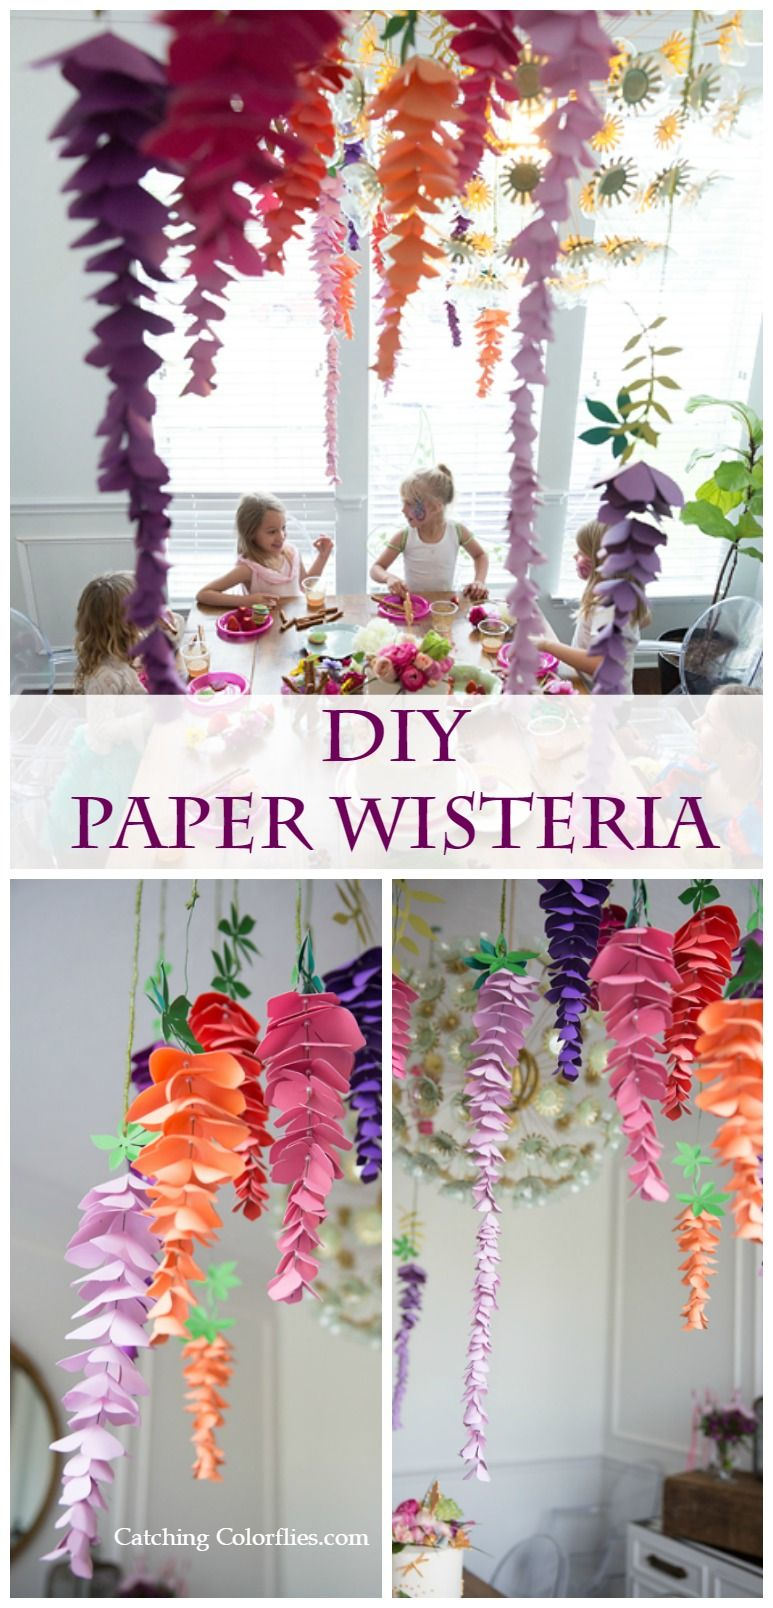 Hanging paper wisteria flower templates pinterest fairy birthday diy paper flowers paper hanging wisteria templates fairy birthday party ideas mightylinksfo